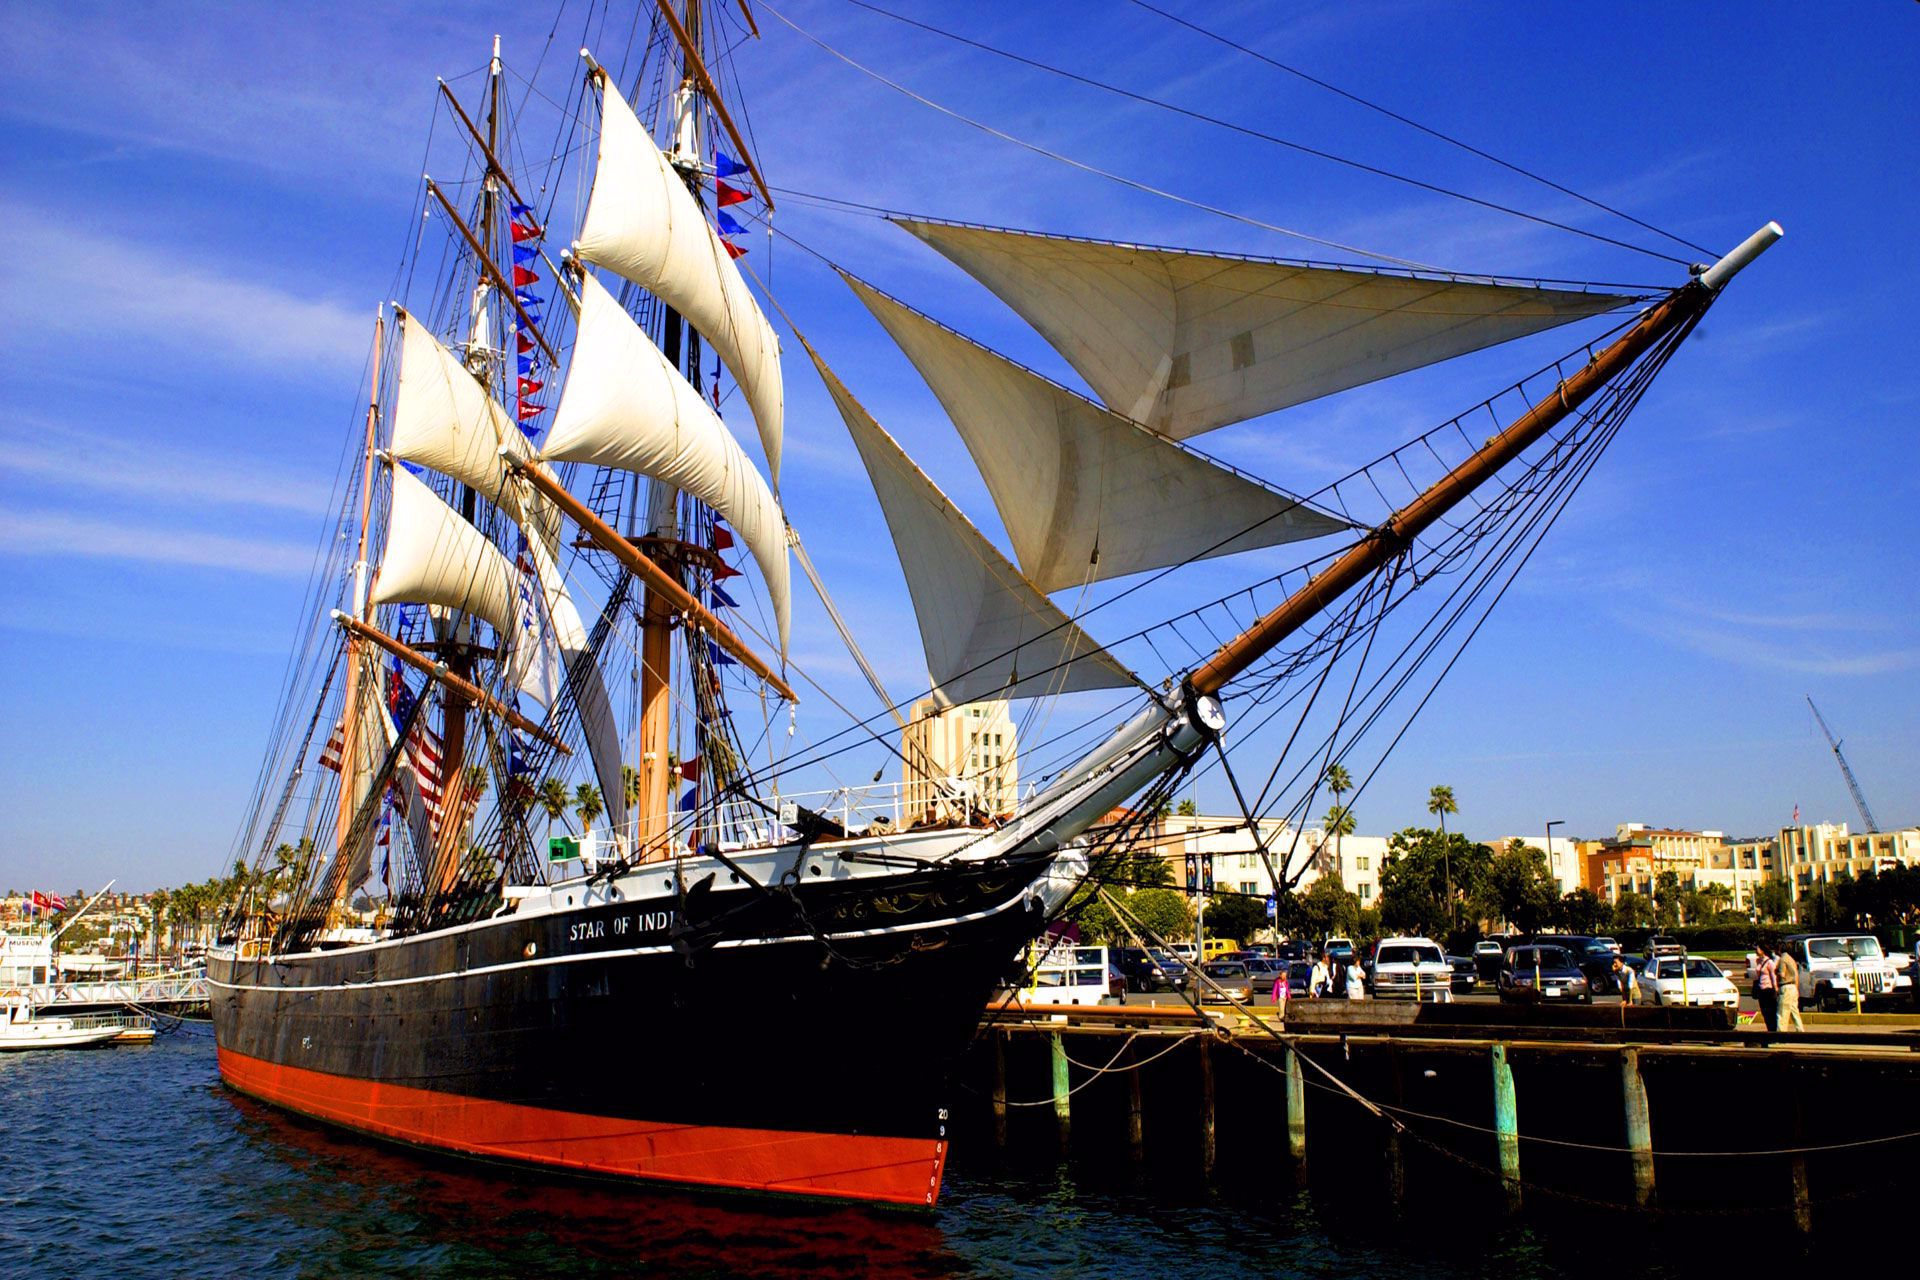 Restore, maintain and operate historic vessels